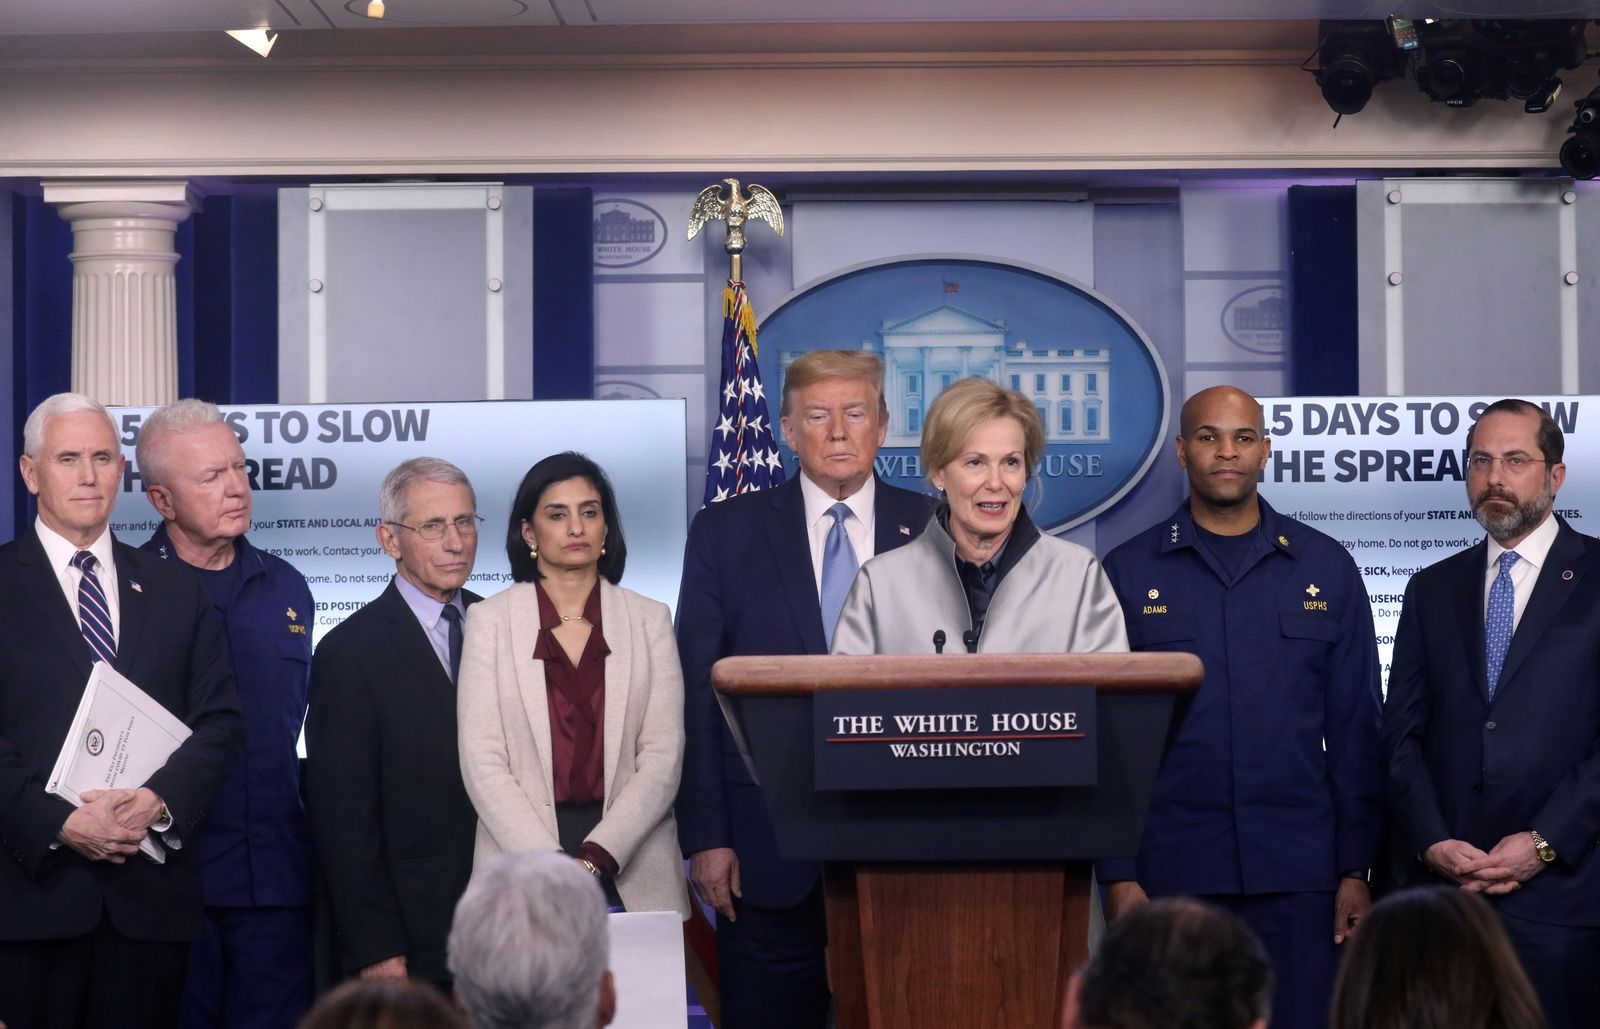 U.S. President Trump gives a press briefing on the coronavirus disease (COVID-19) outbreak in Washington